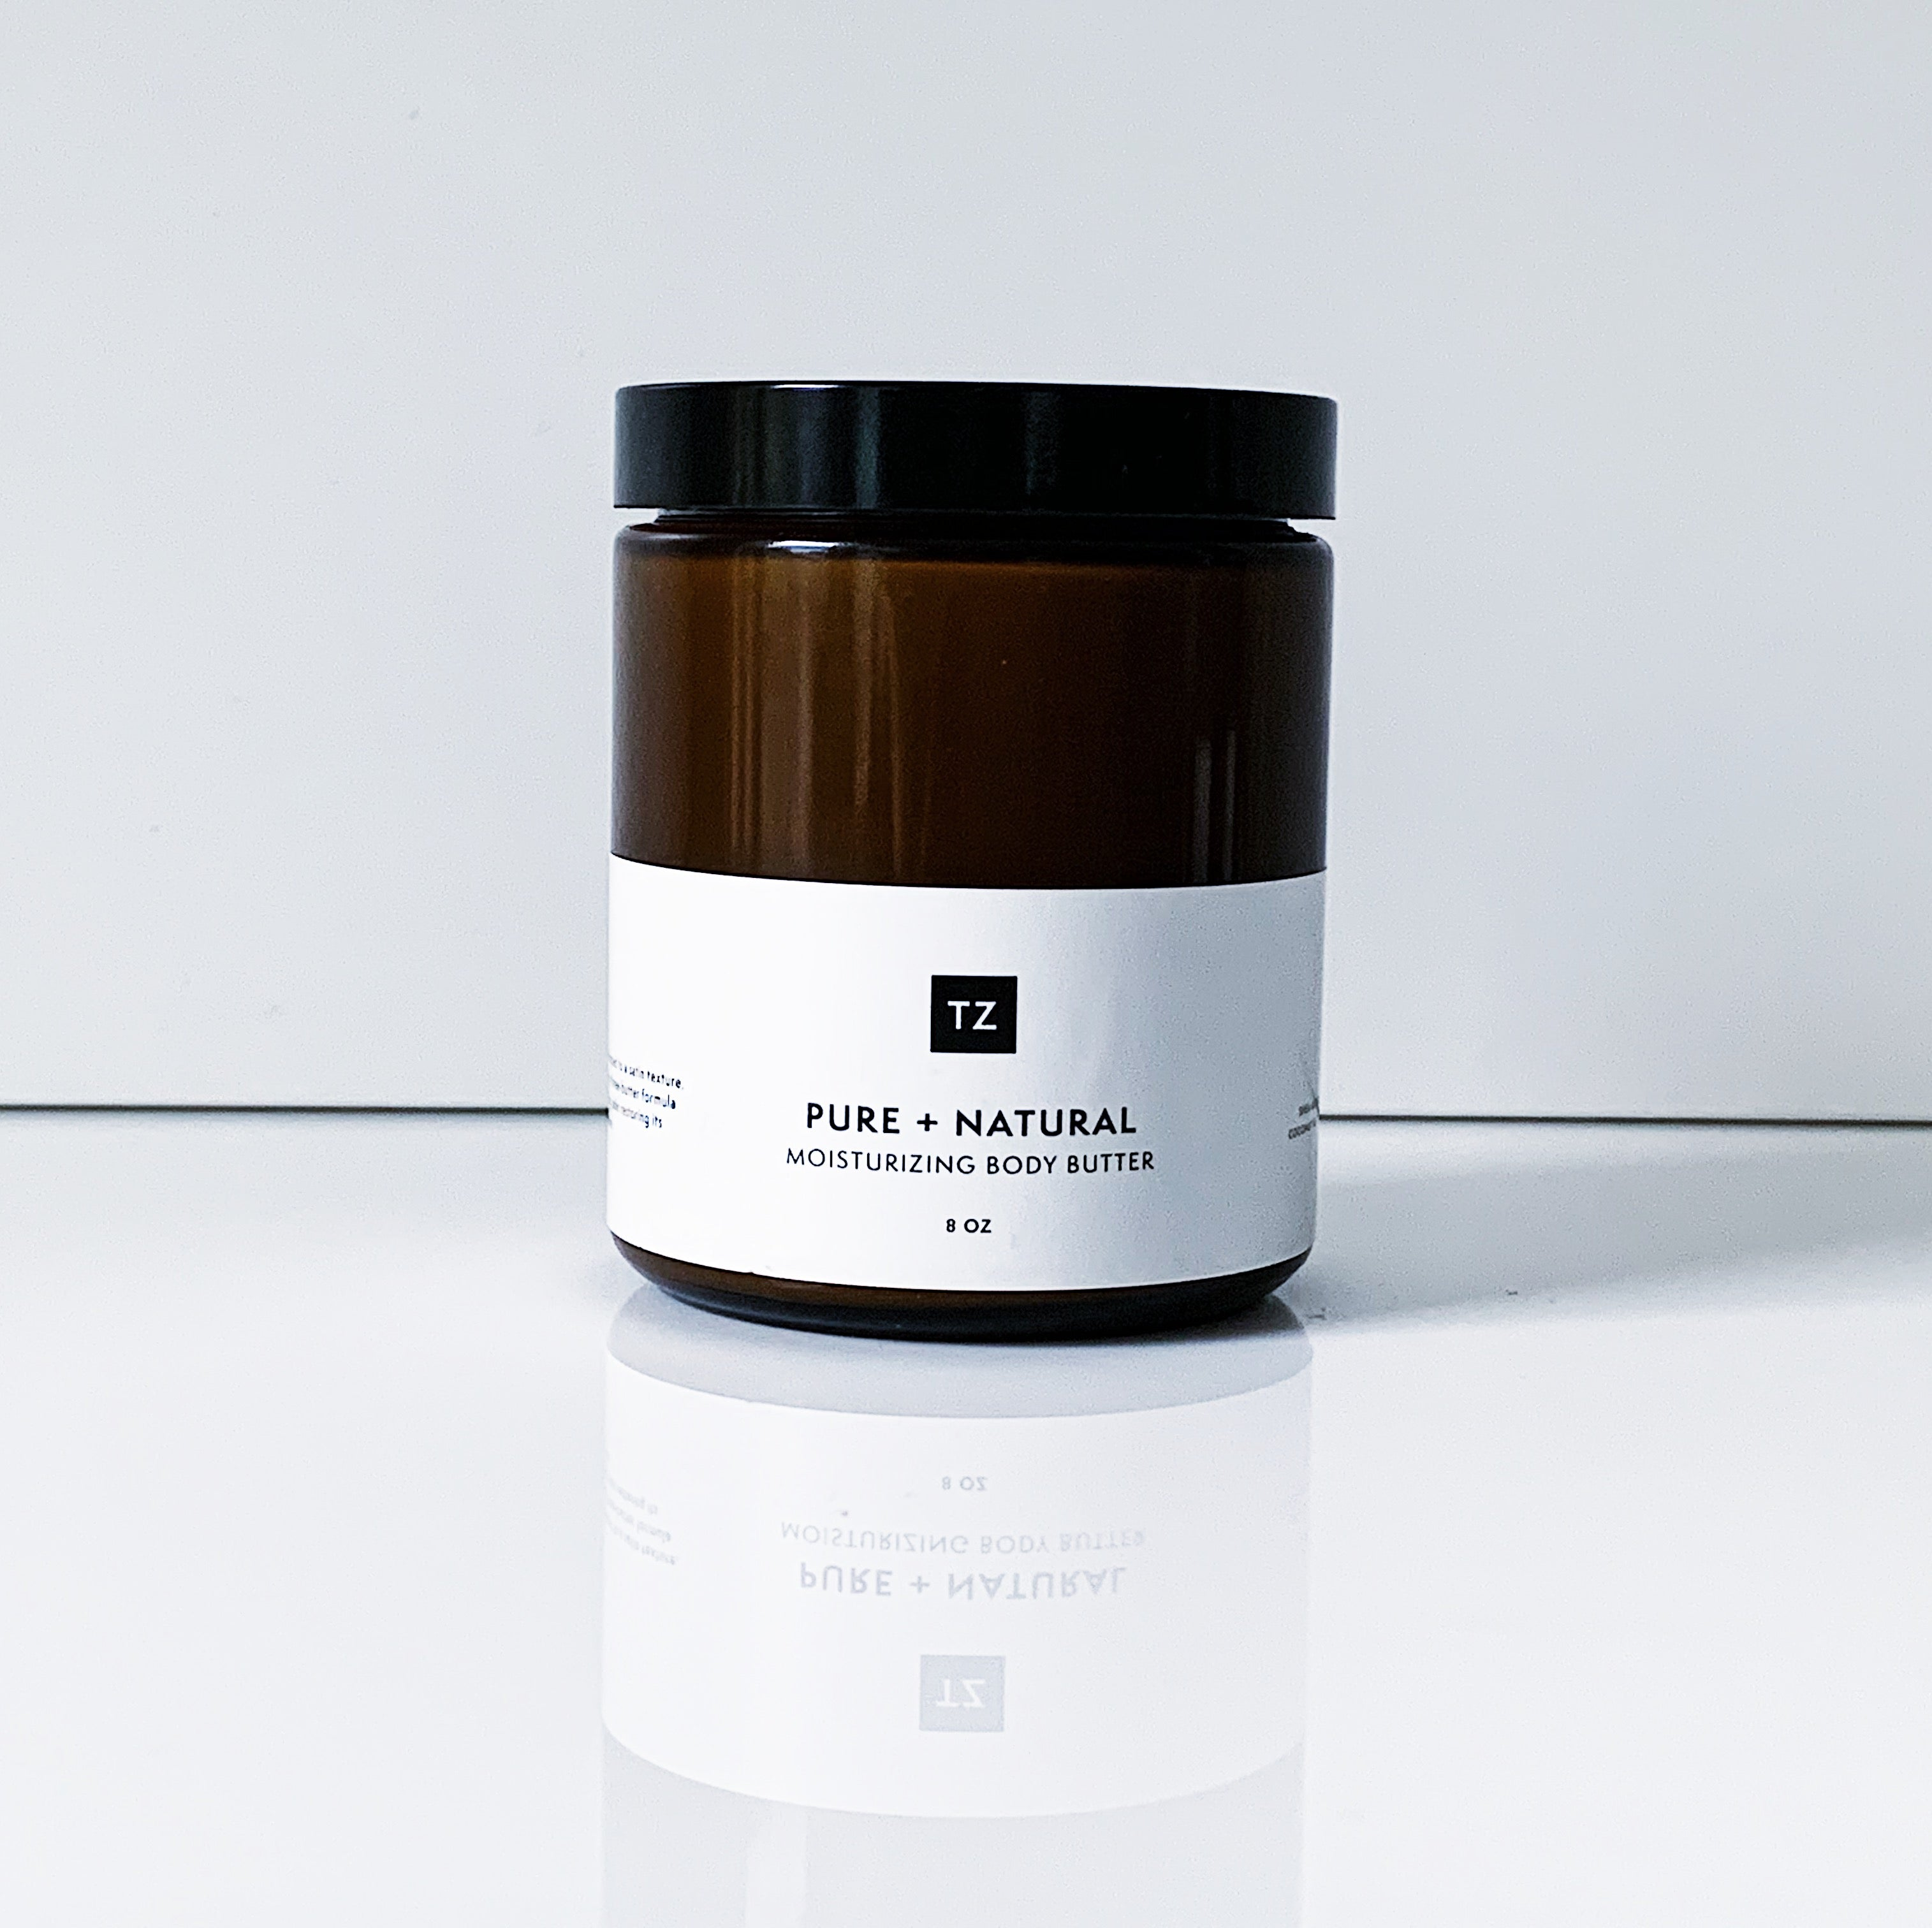 Pure + Natural Body Butter